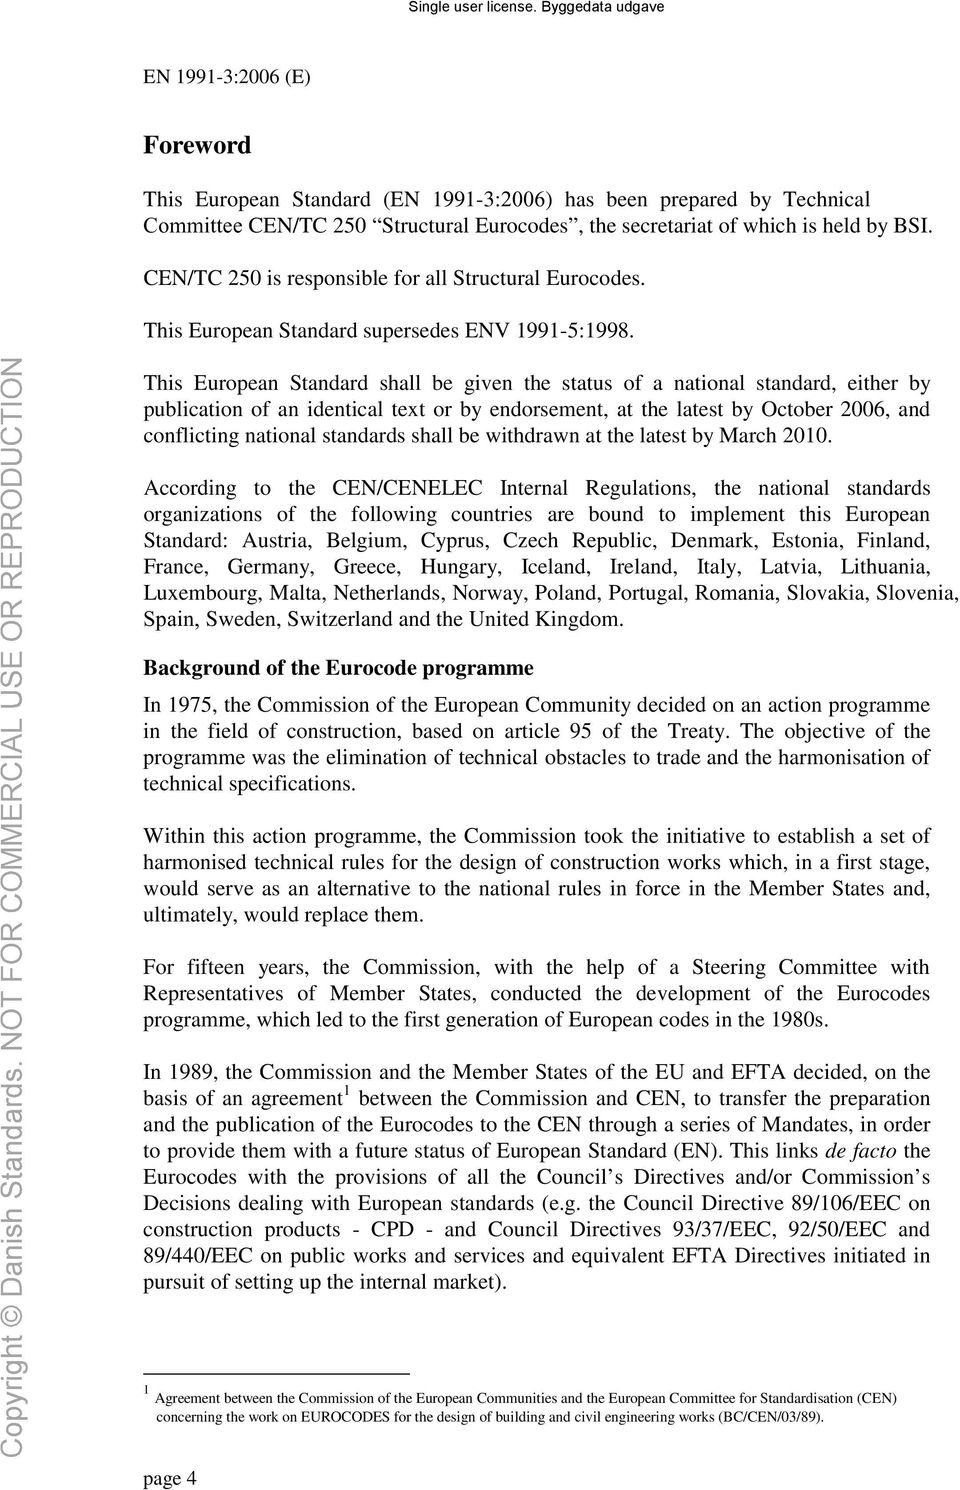 This European Standard shall be given the status of a national standard, either by publication of an identical text or by endorsement, at the latest by October 2006, and conflicting national